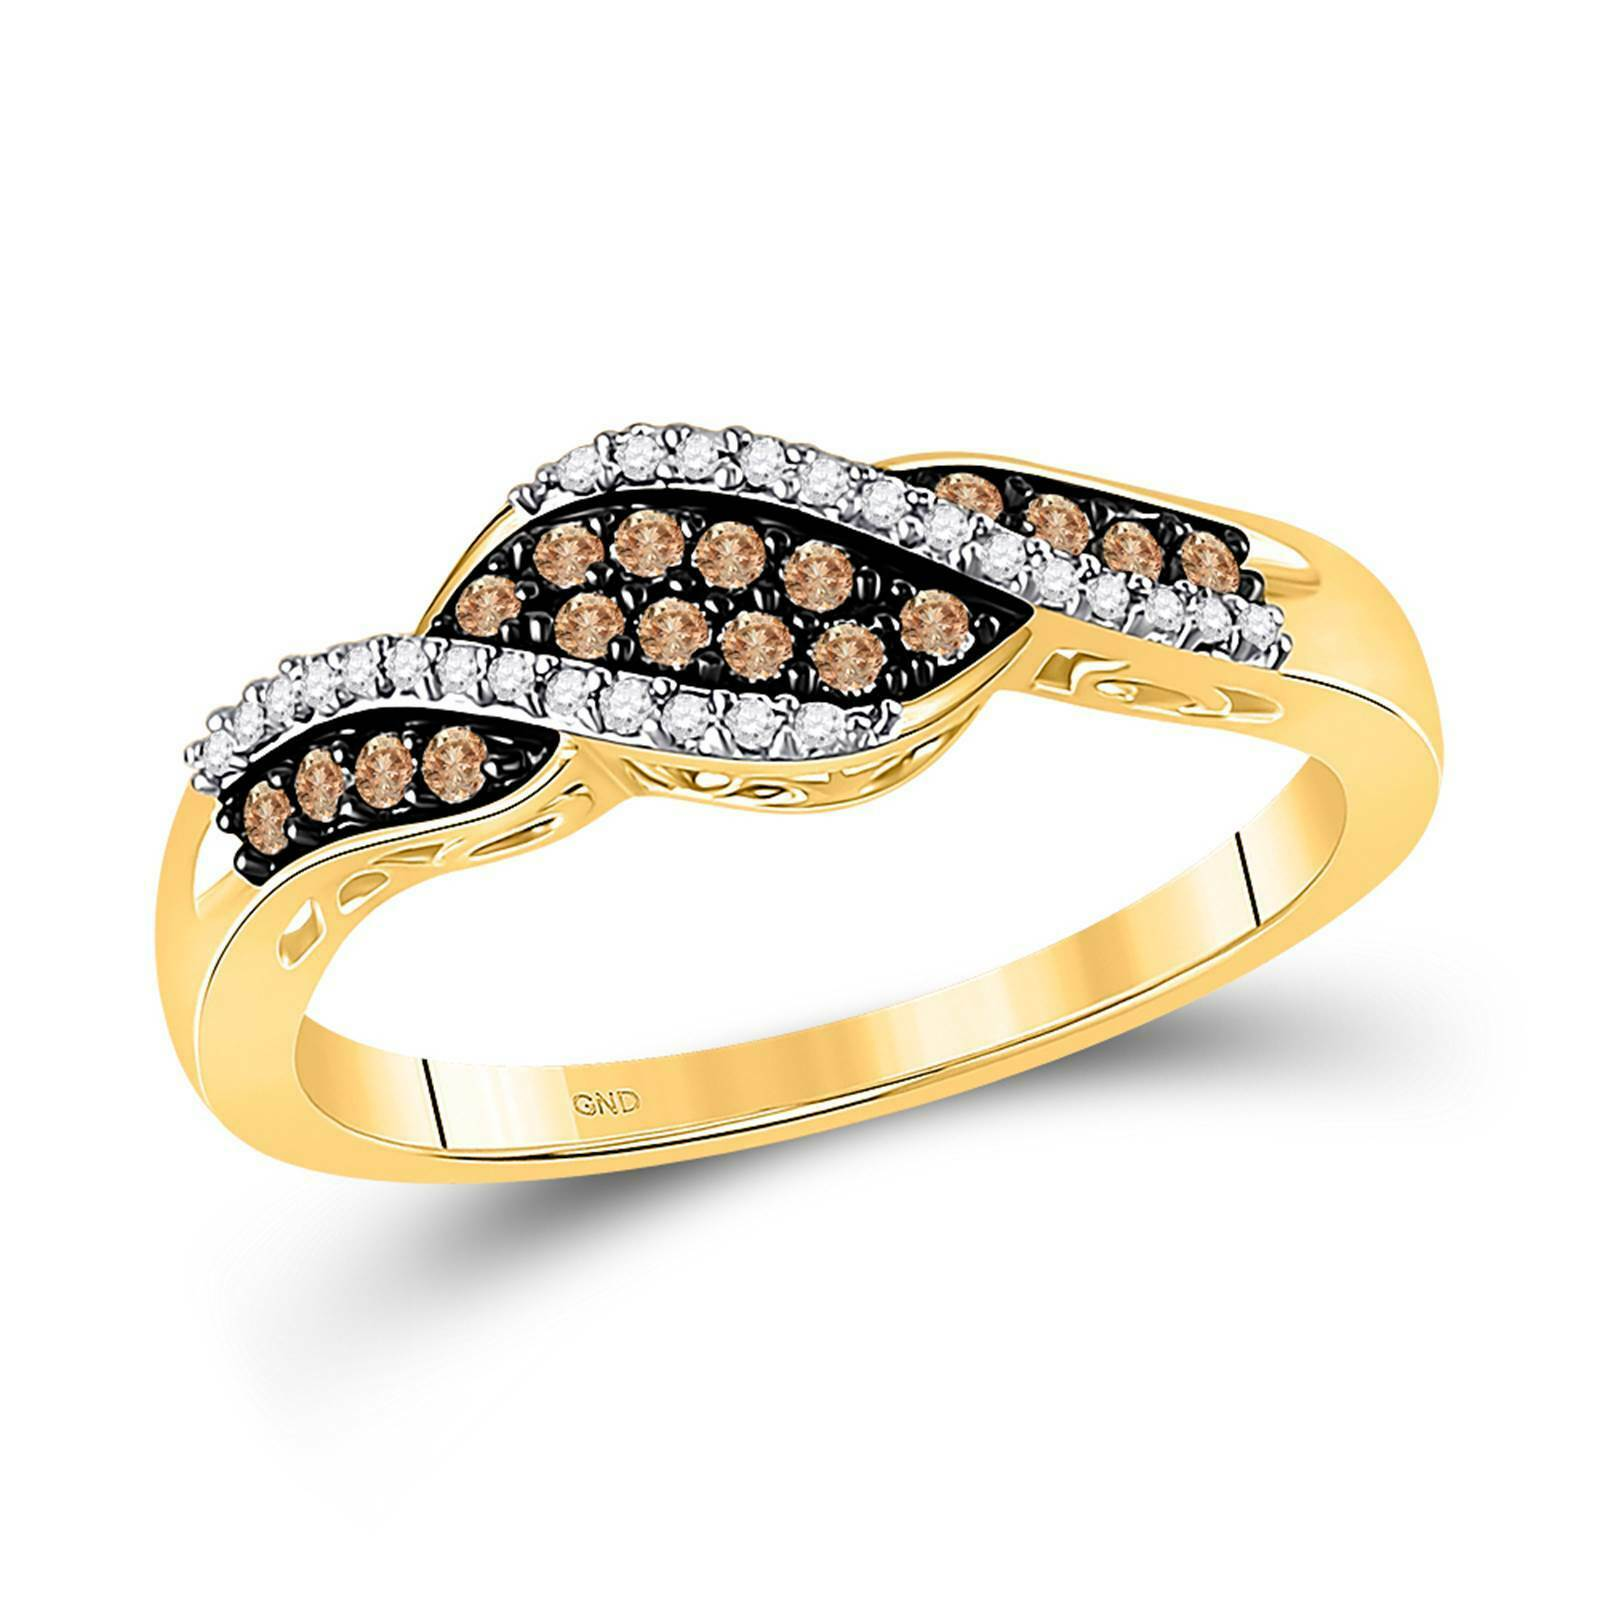 10k Yellow Gold Ladies Champagne Brown Diamond Ring Band For Sale Online